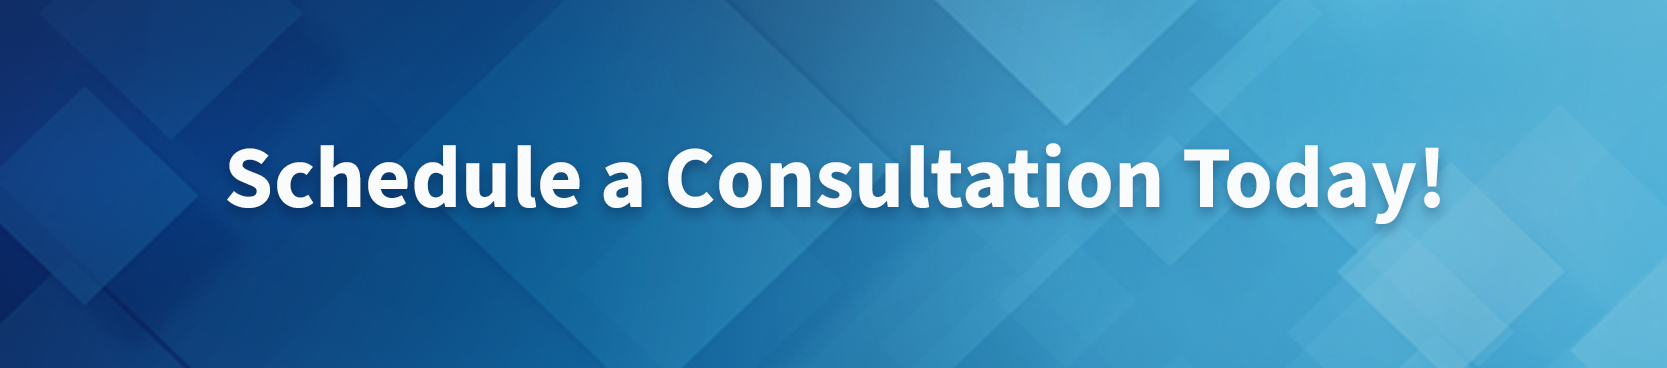 Schedule a Consultation Today!